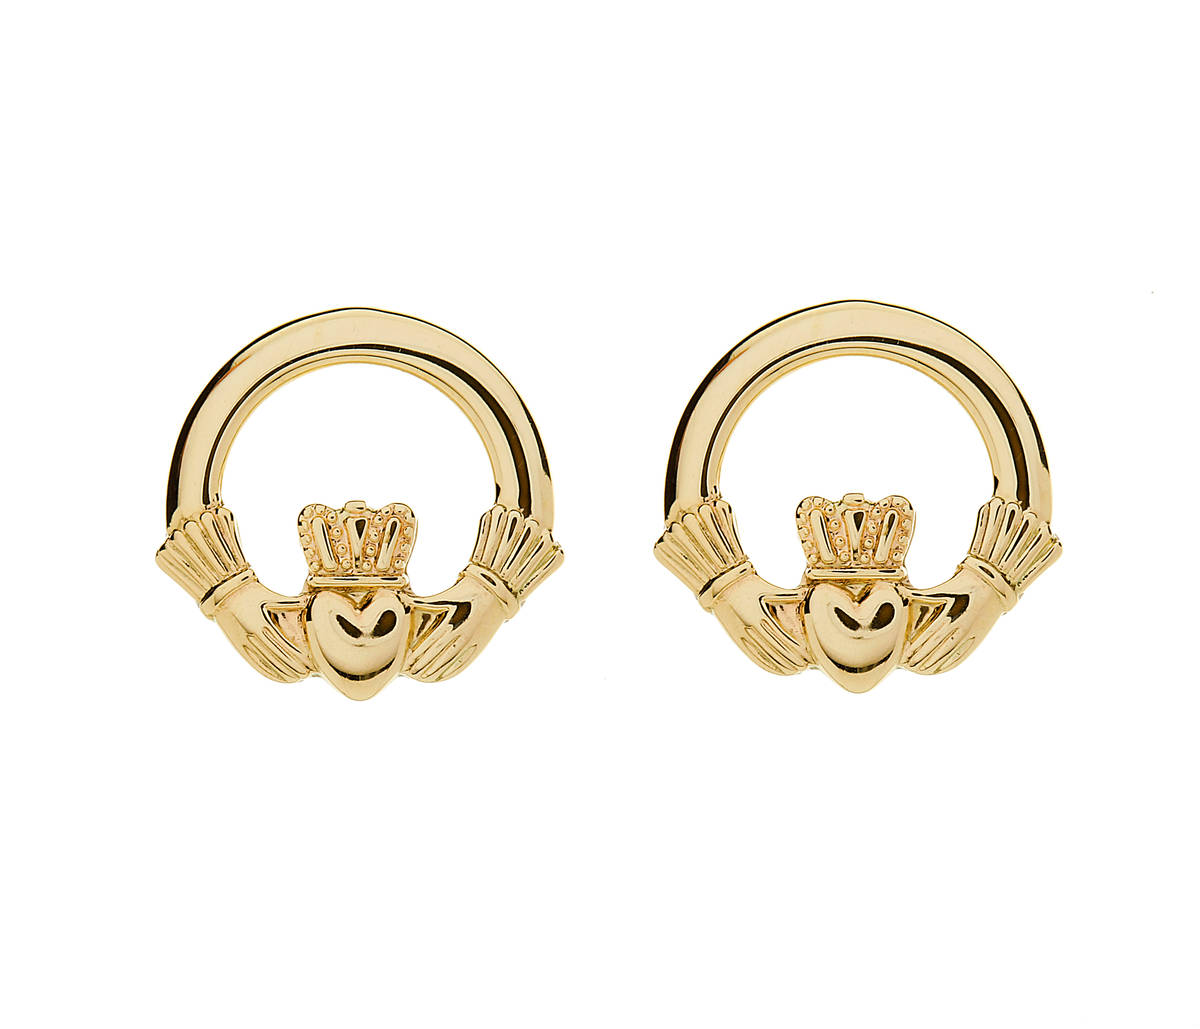 10ct Gold Claddagh Stud Earring 10 carat yellow gold medium classic claddagh stud earrings-A Conversation Stopper!!